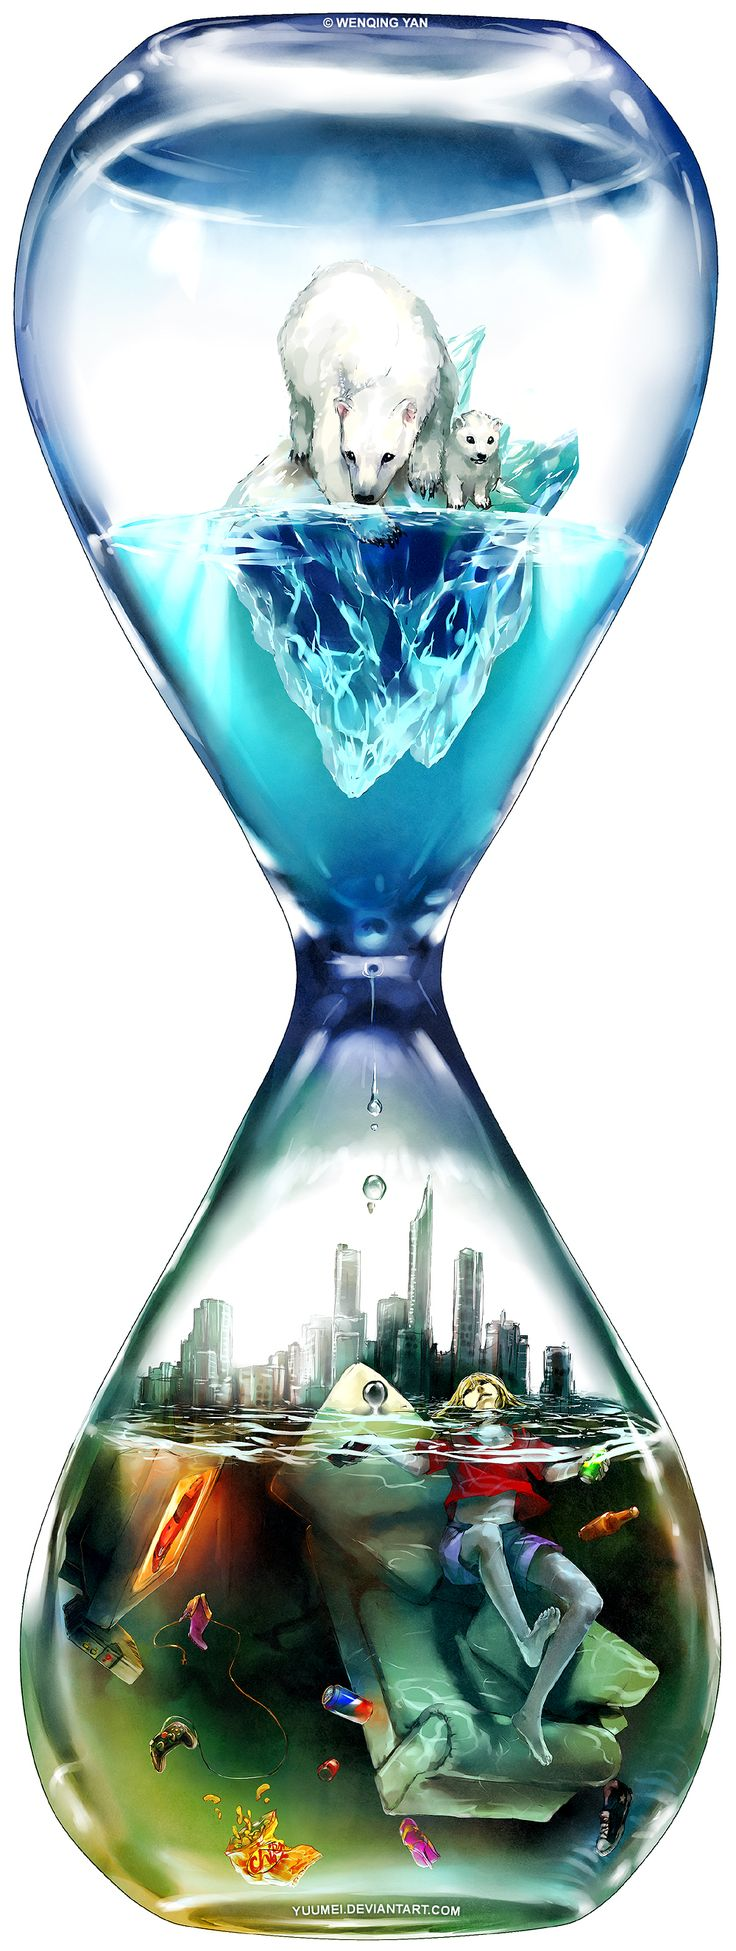 """Countdown"" by Yuumei. An intense picture about what humans are doing to destroy the environment."